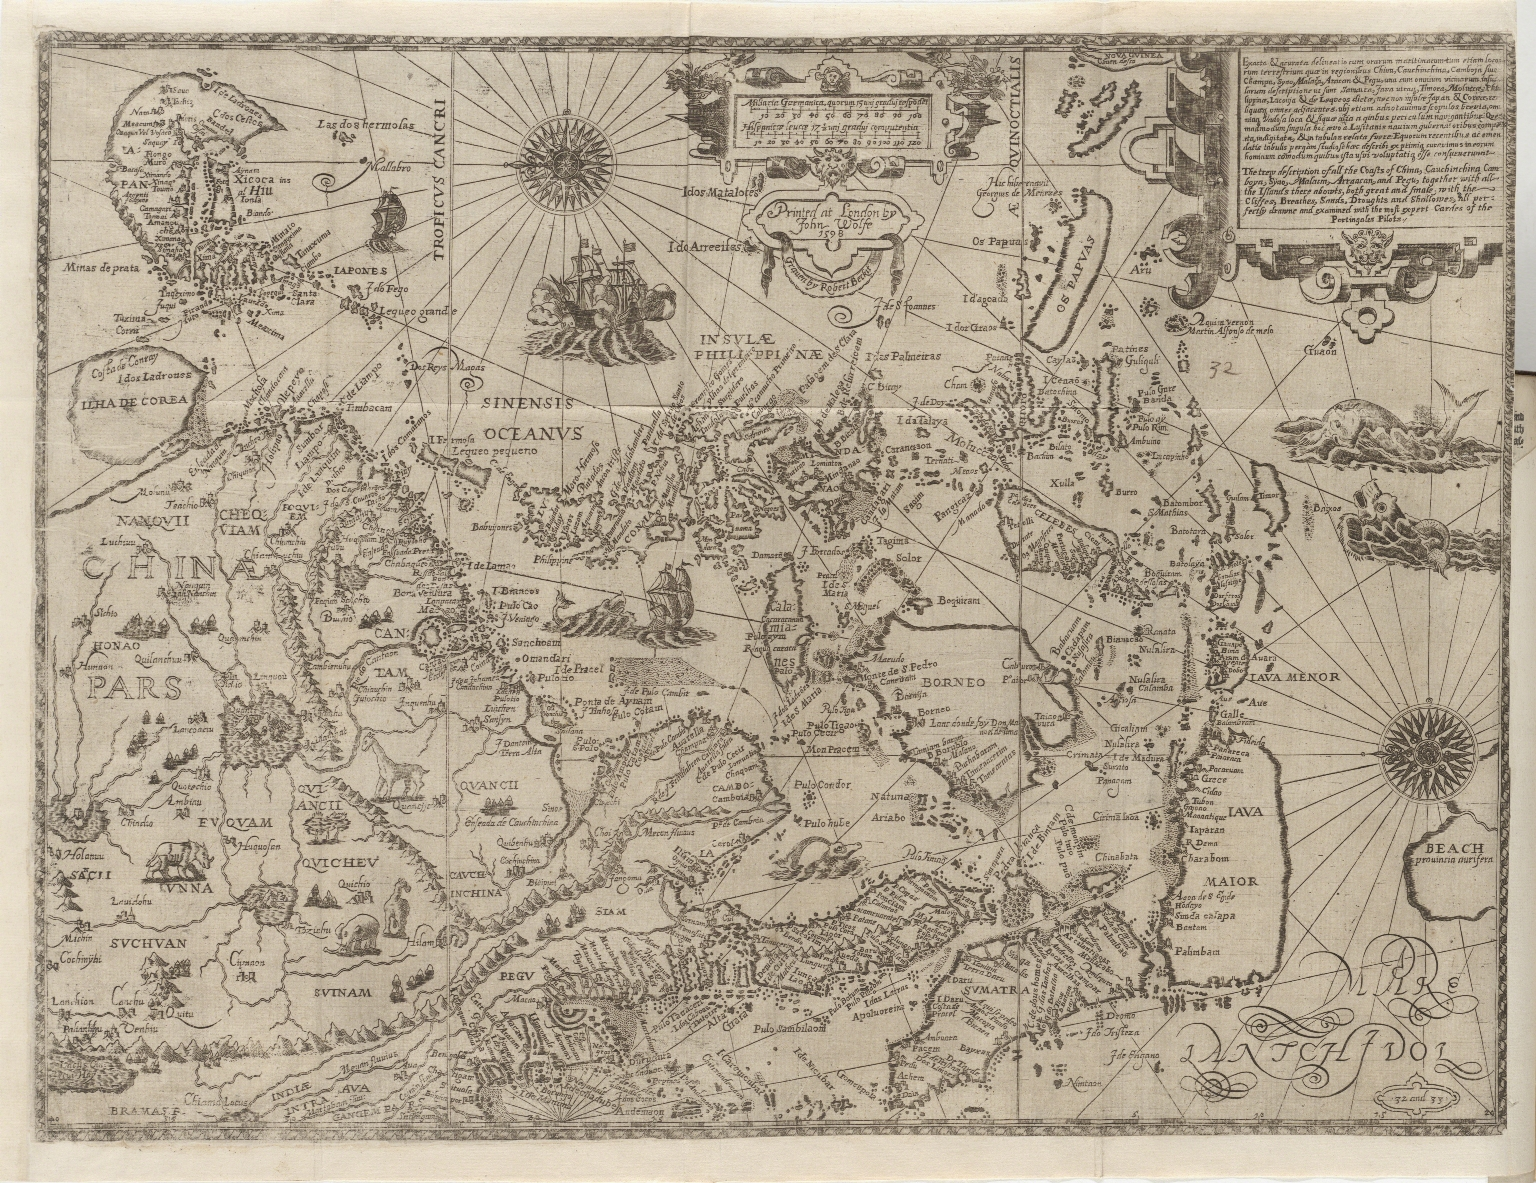 The Nauigation of the Portingales into the East Indies, containing their trauels by Sea, into East India, and from the East Indies into Portingall, also from the Portingall Indies to Malacca, China, Iapon, the Islands of Iaua and Sunda ...